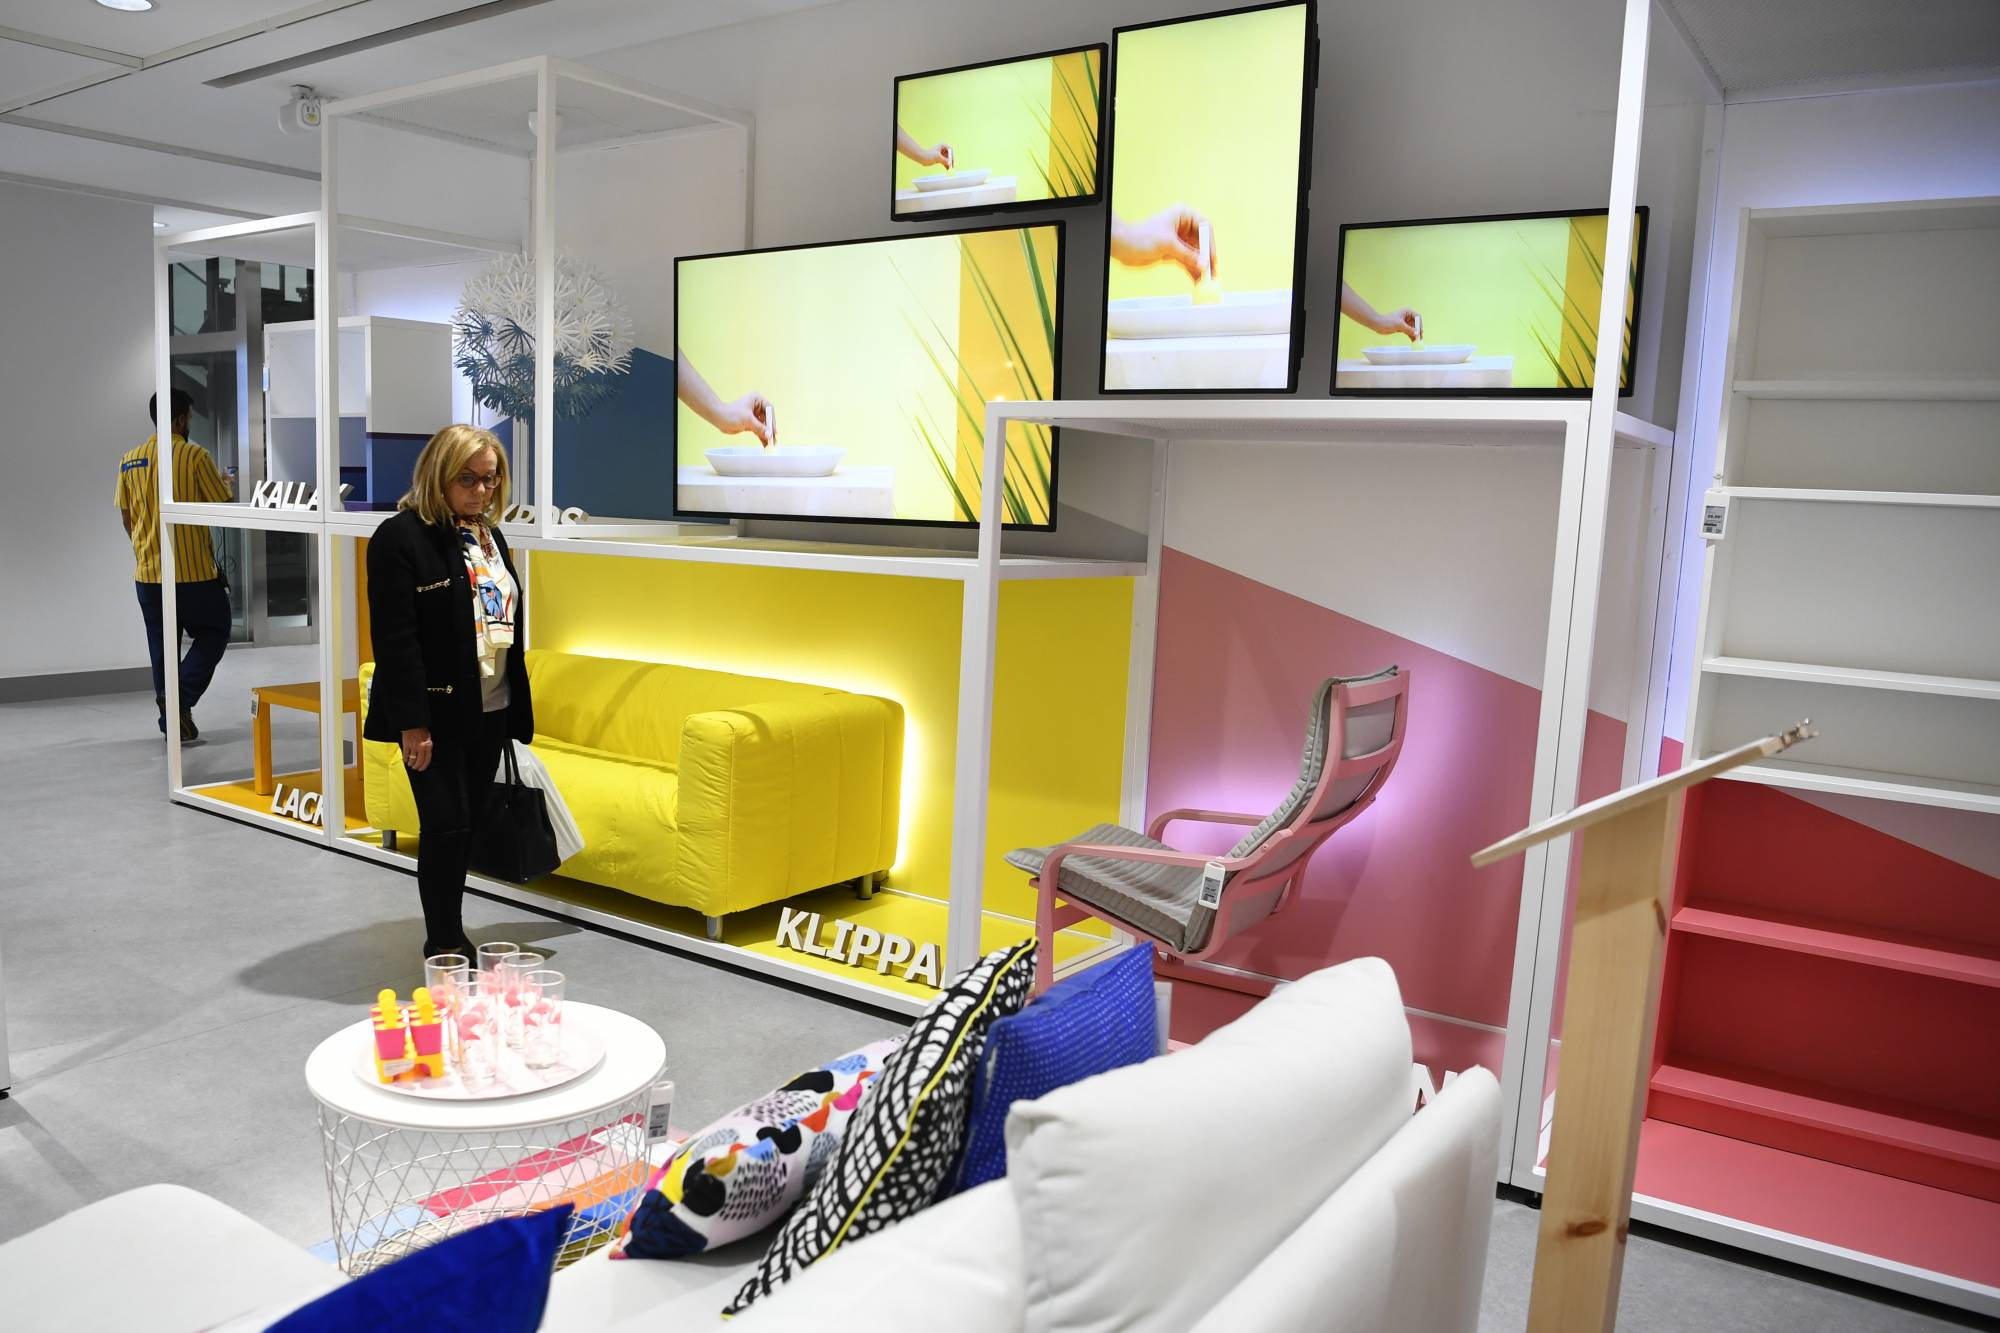 Ikea Announces Furniture Rental Plan Amid Online Competition ...